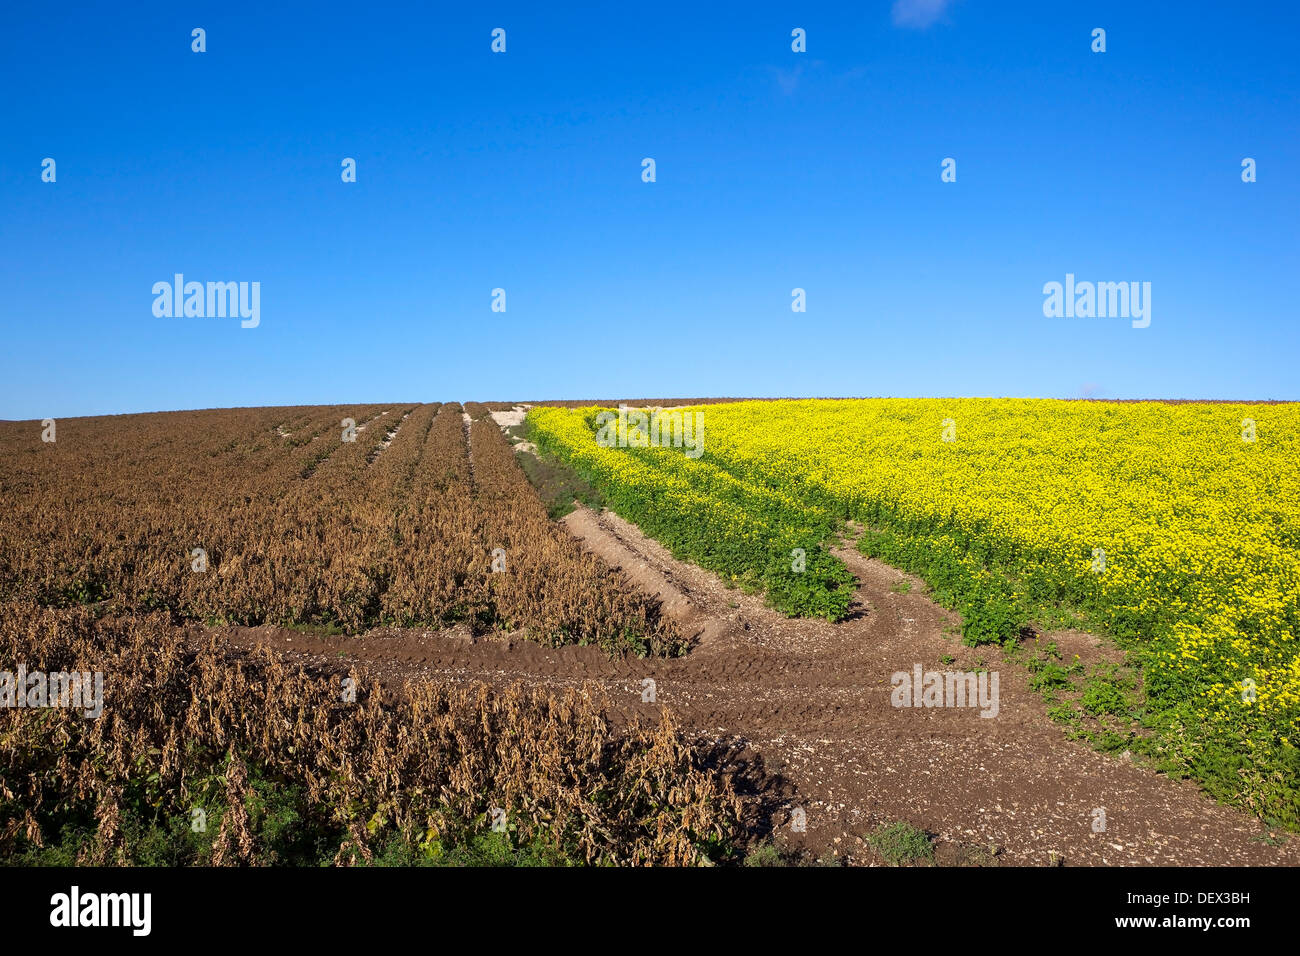 Agricultural Crops With Yellow Mustard Flowers And Brown Potato